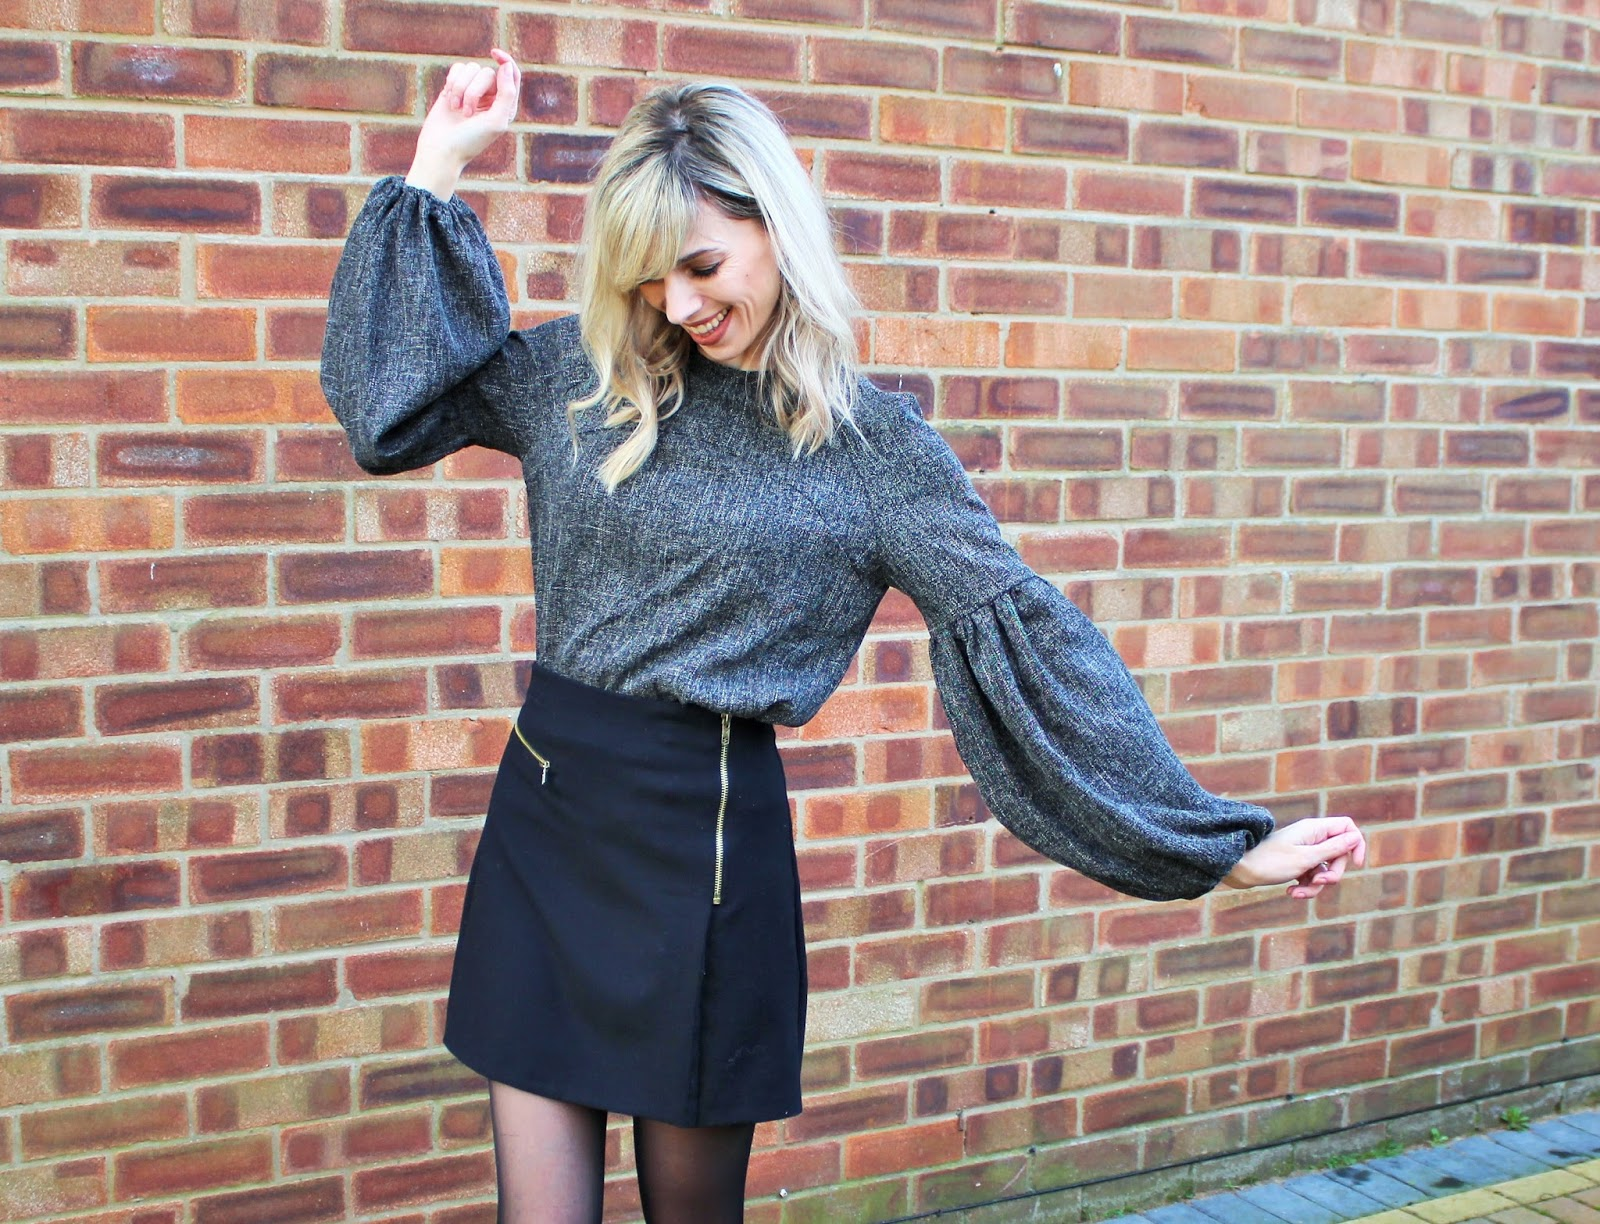 OOTD featuring Shein Balloon Sleeve Top, Topshop Mini Skirt and Zara Ankle Boots - 1